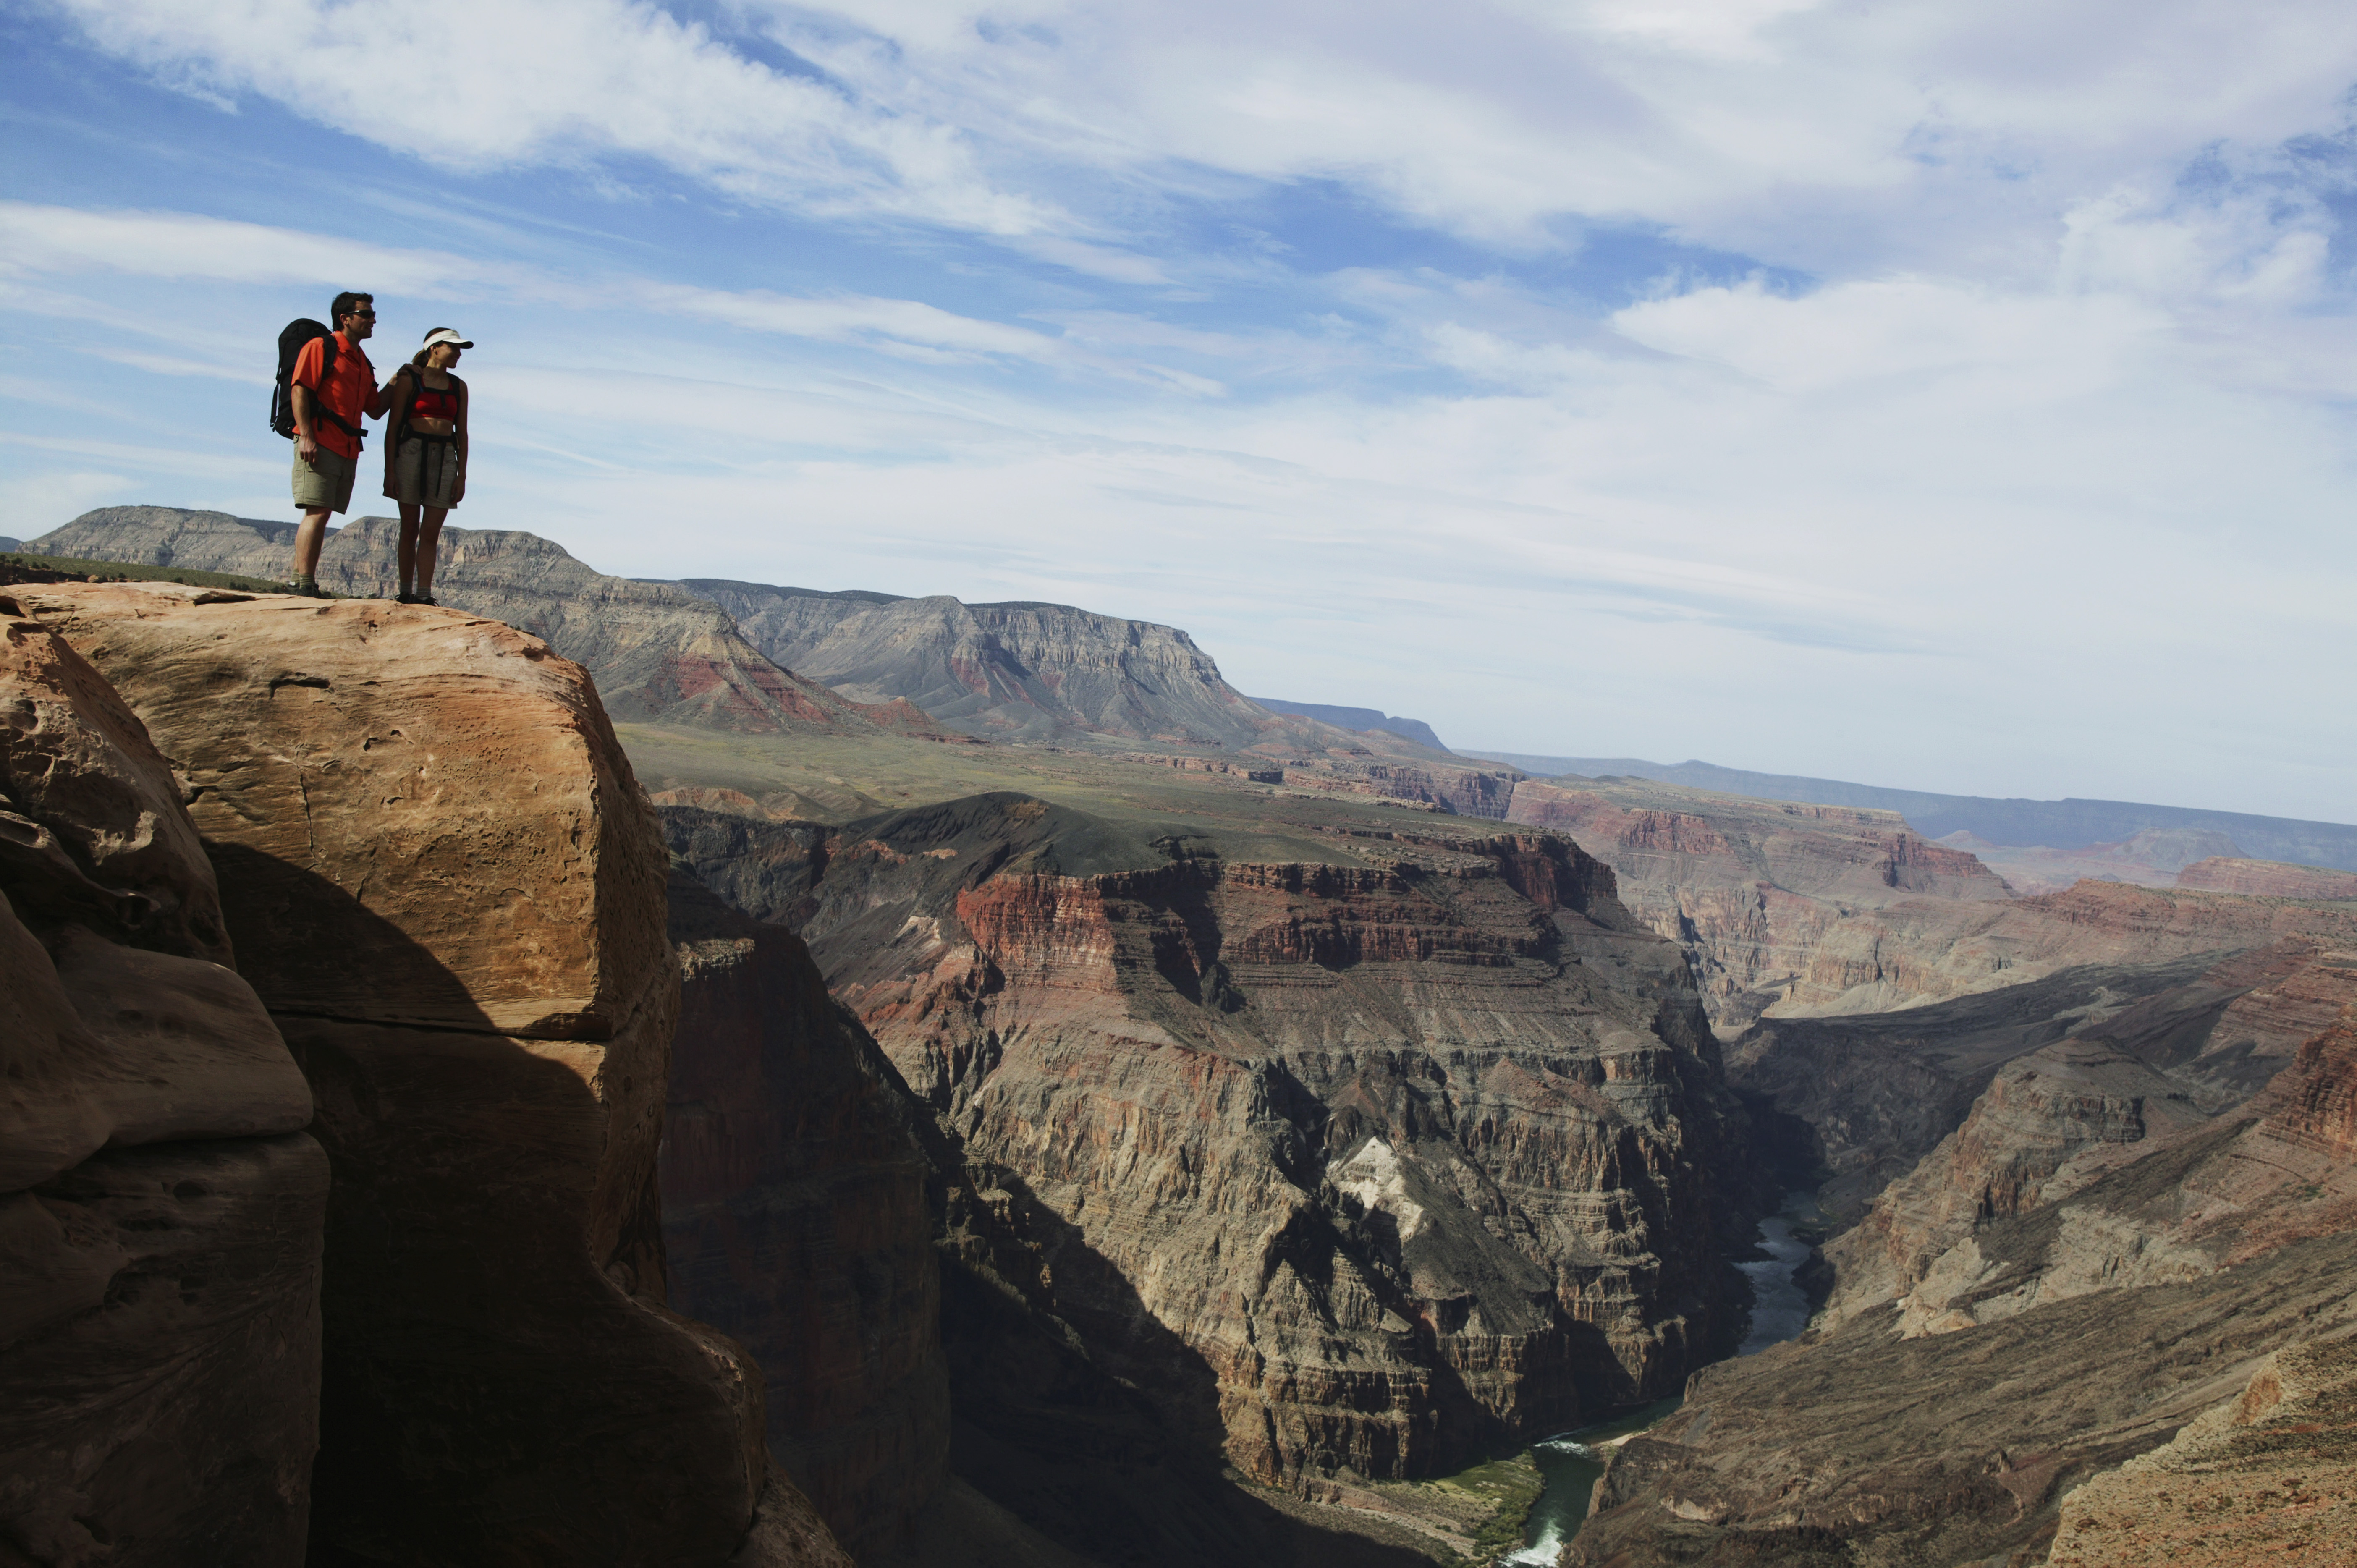 Hike in the Grand Canyon